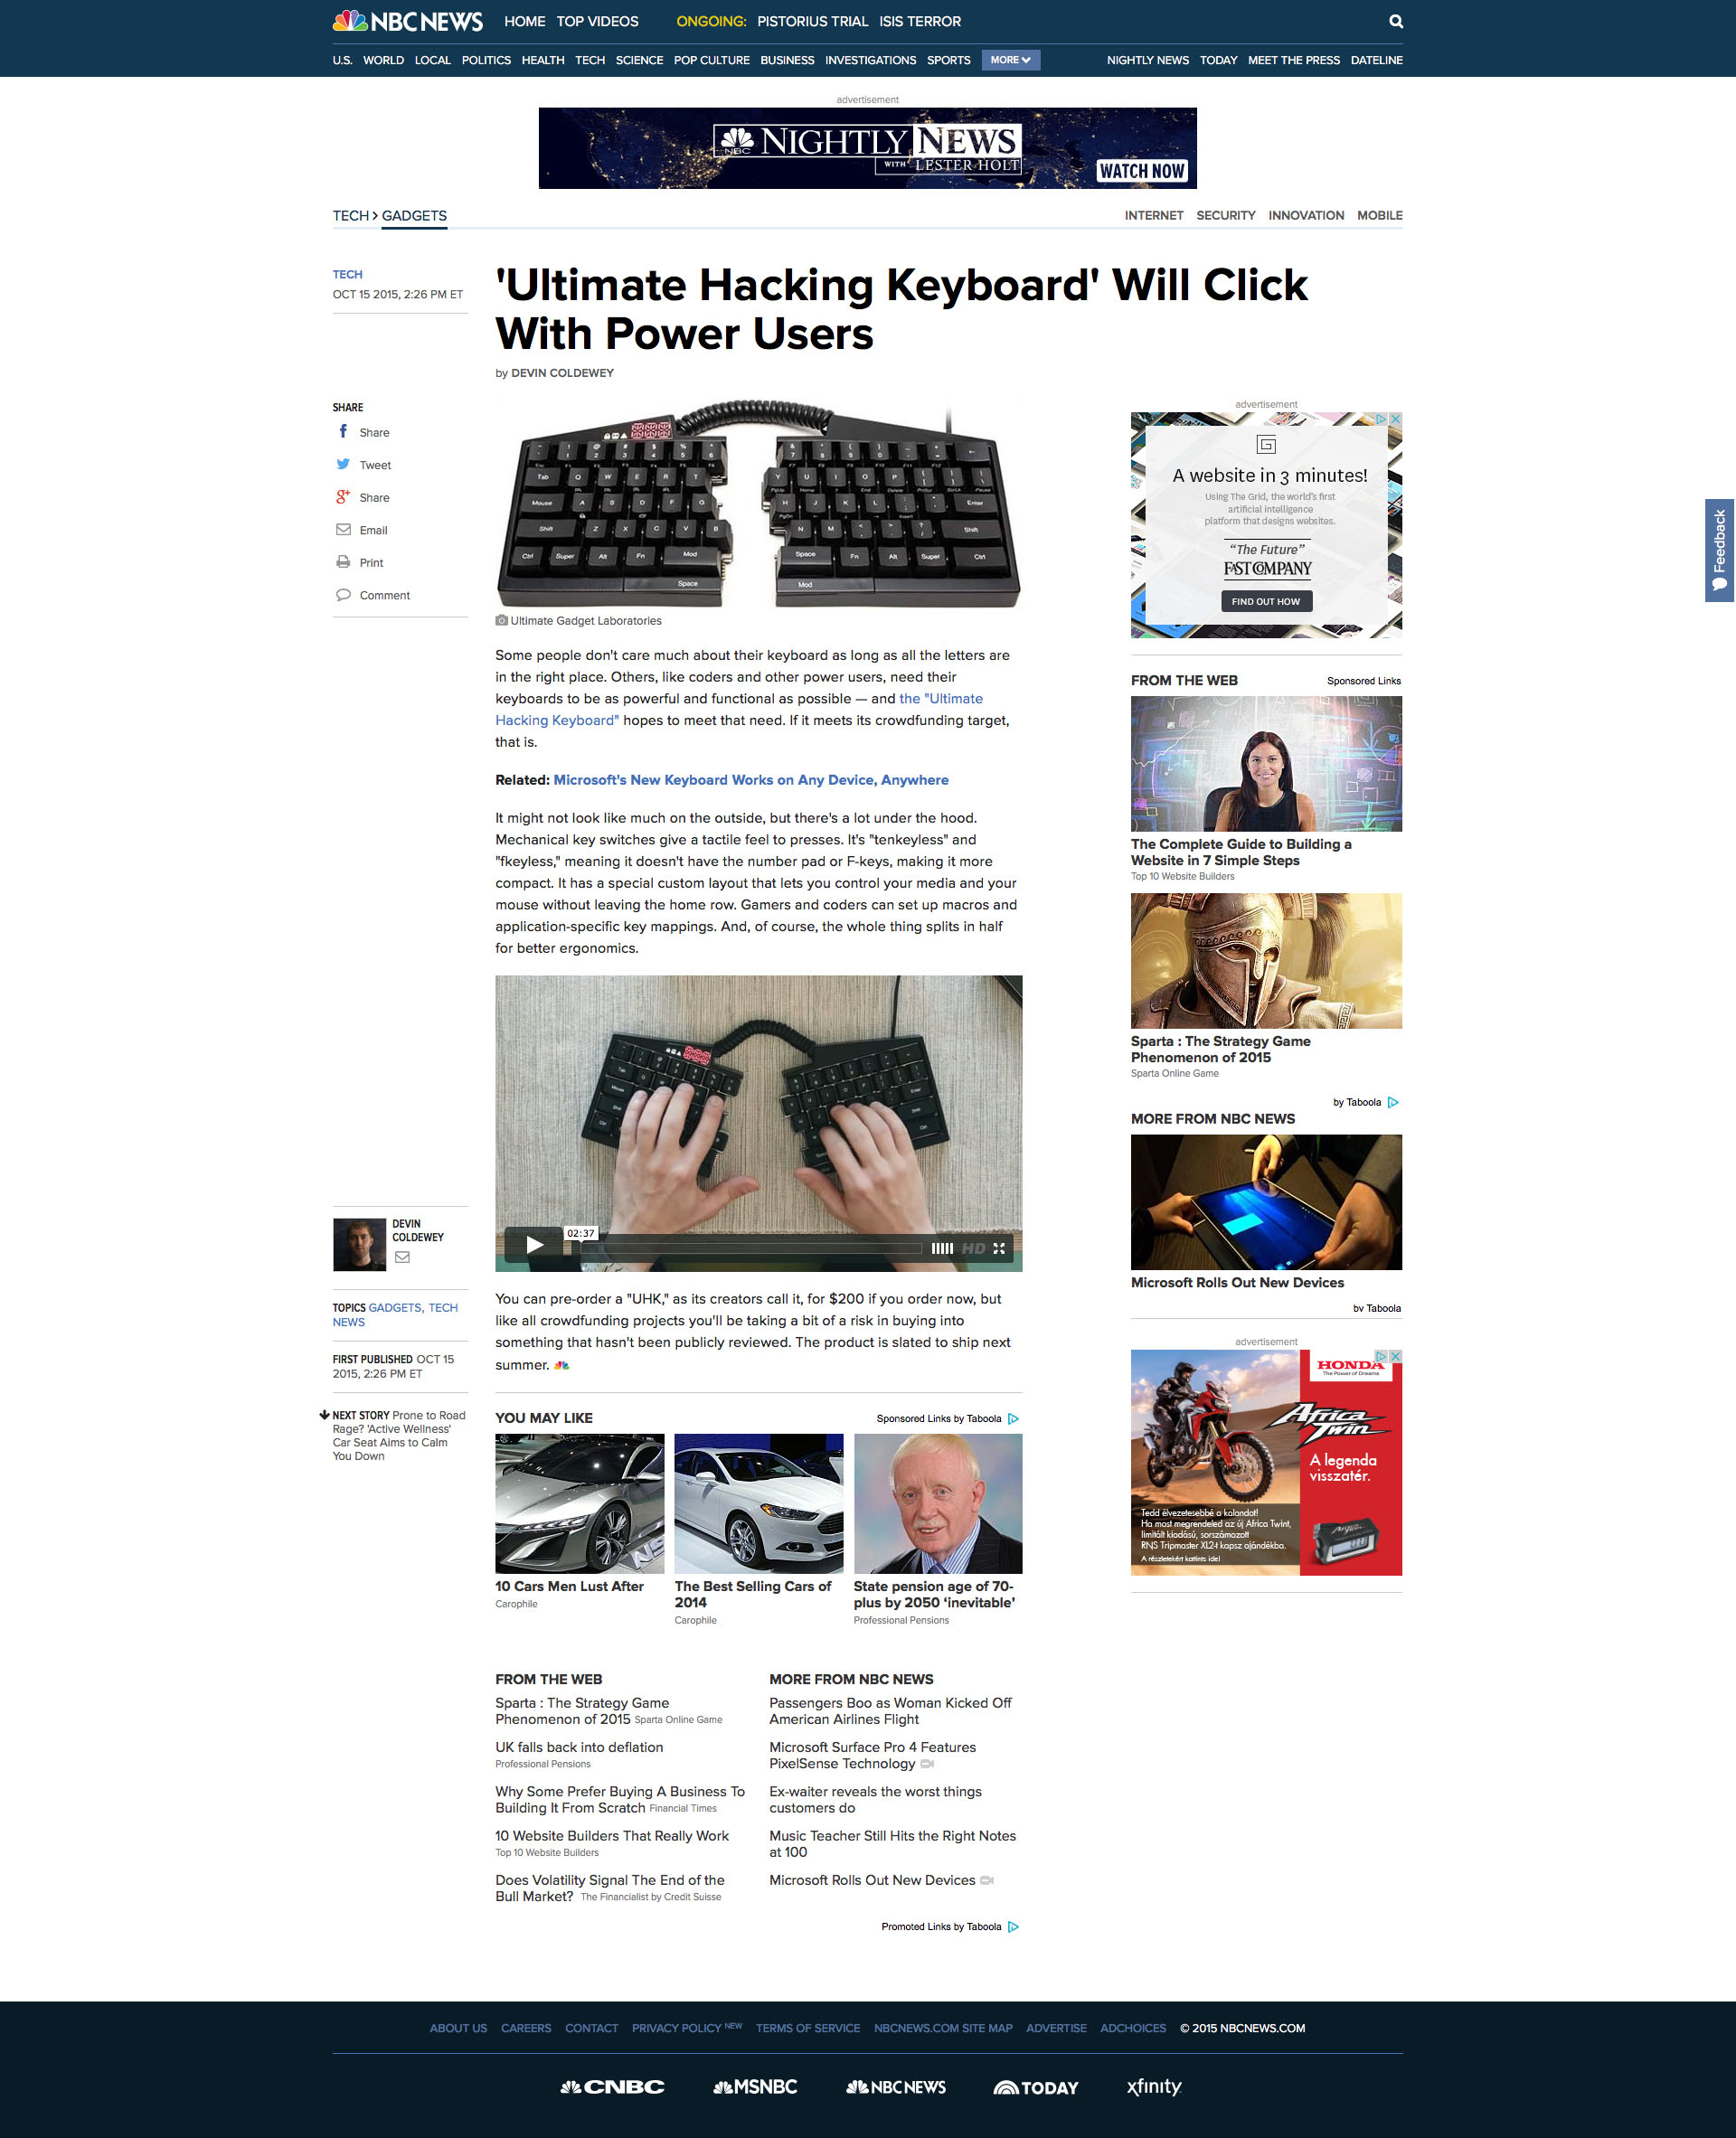 'Ultimate Hacking Keyboard' Will Click With Power Users - NBC News